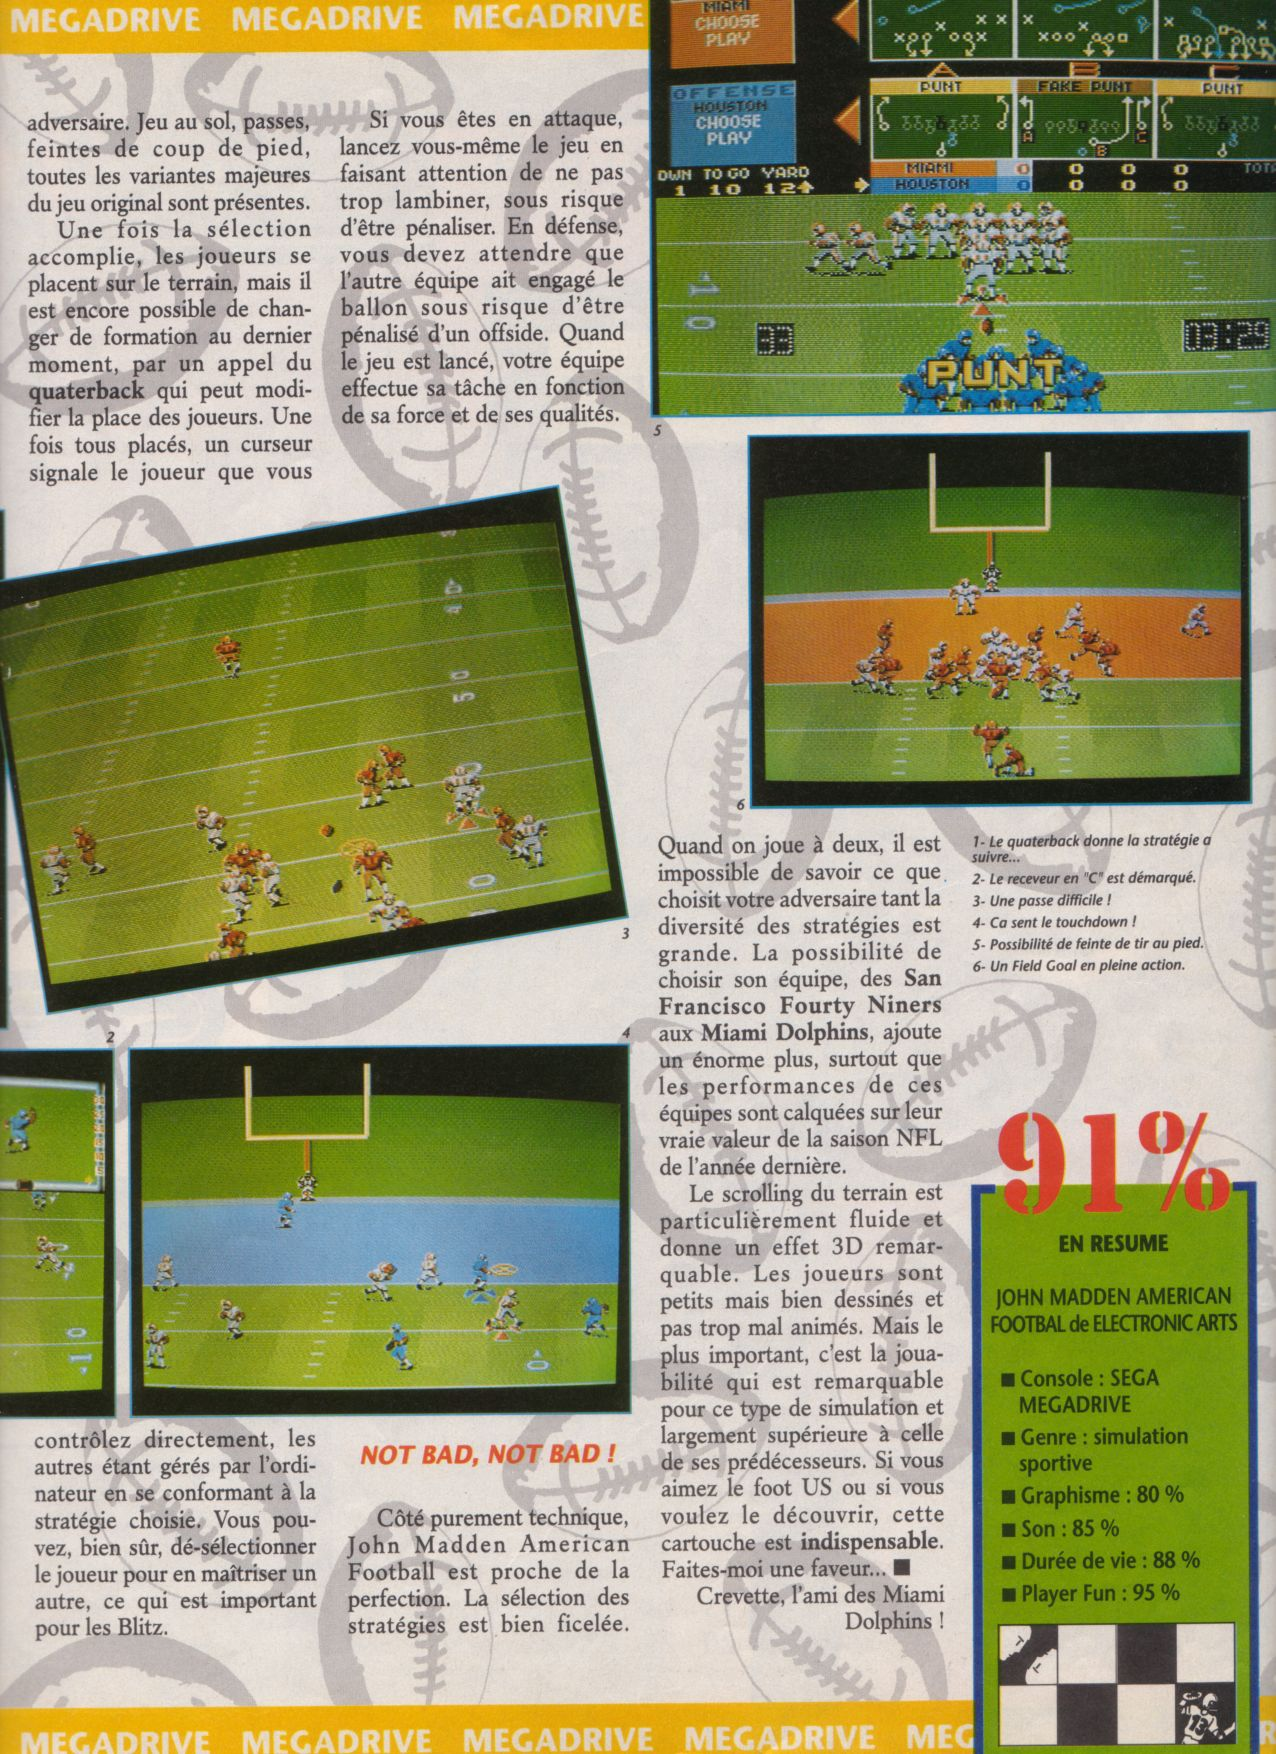 Le topic officiel de la Megadrive - Page 26 Player%20One%20005%20-%20Page%20033%20%281991-01%29